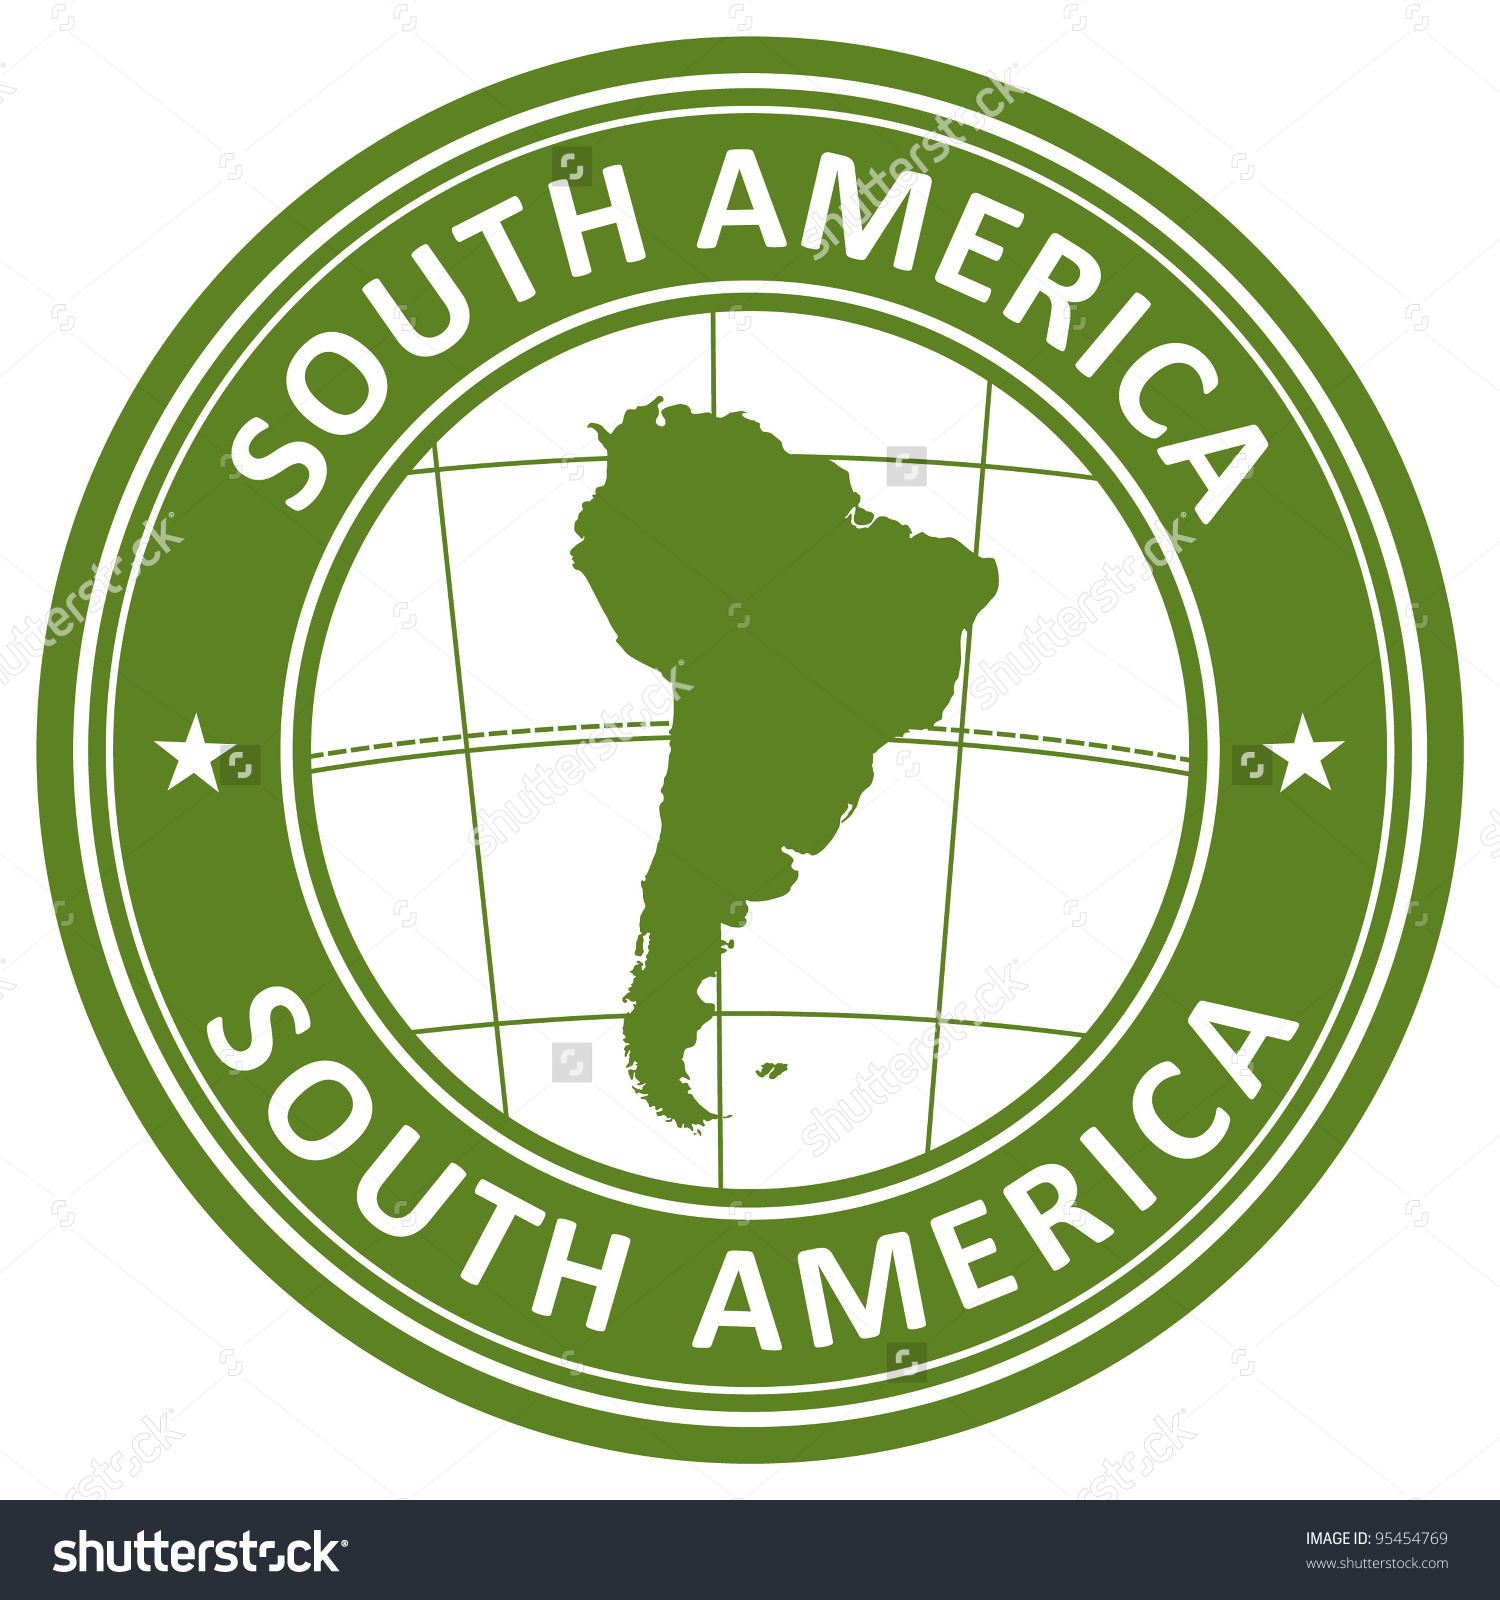 South America Stamp Stock Vector 95454769.